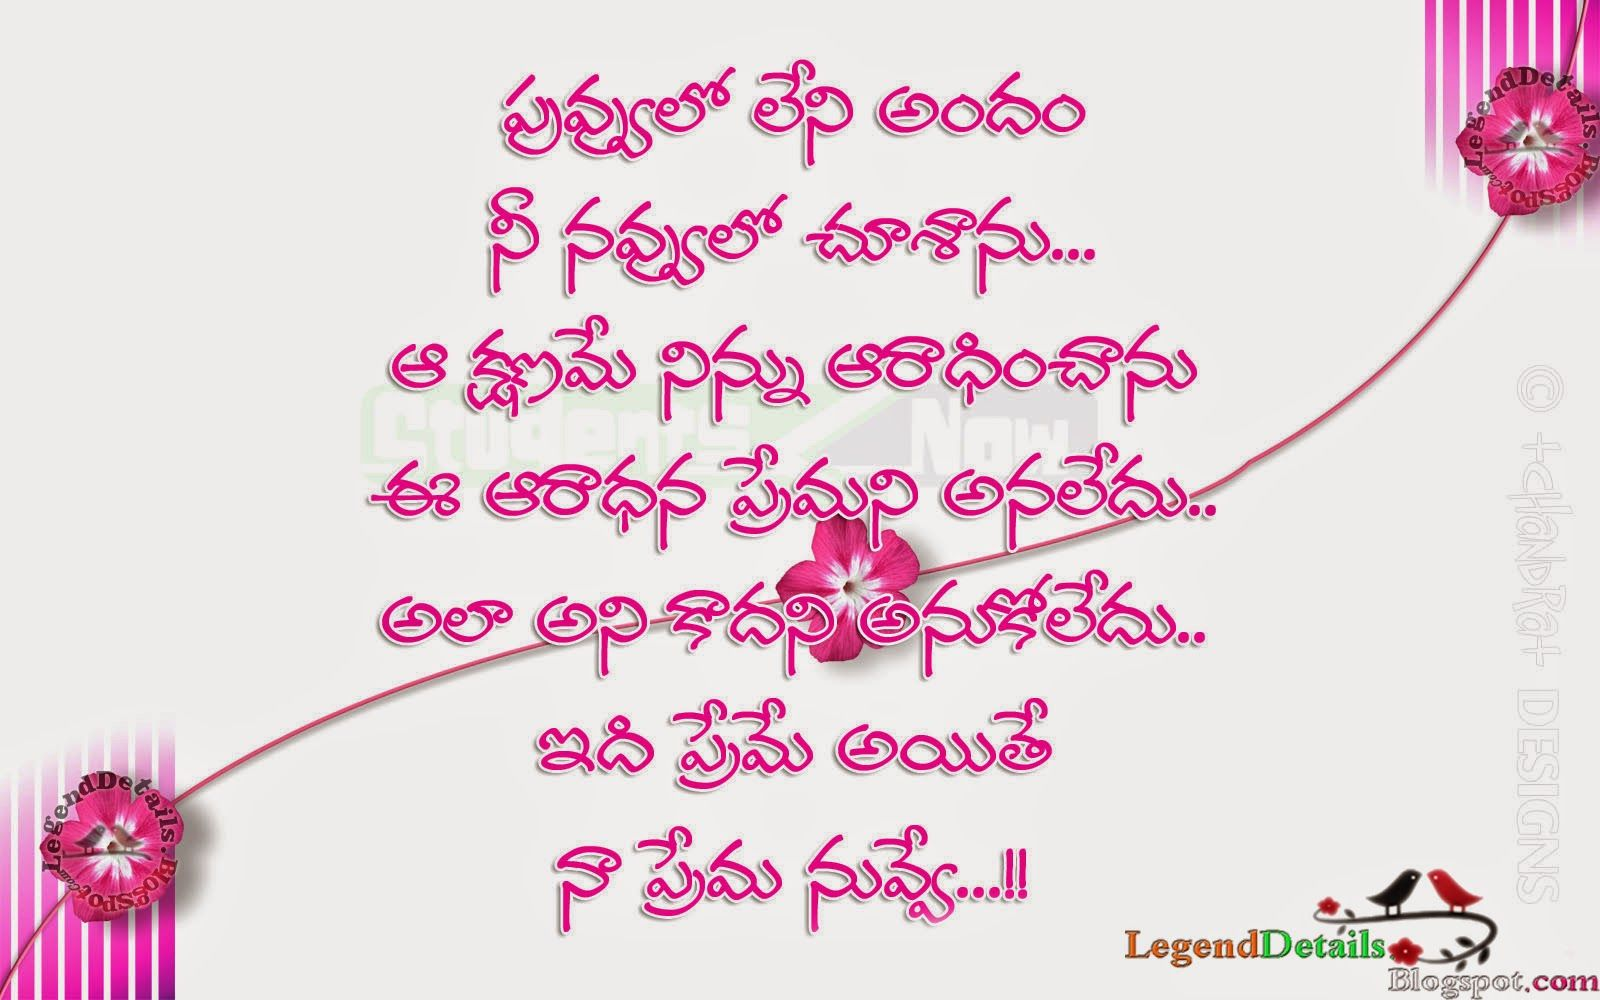 funny quotes in telugu images | Love quotes for crush ...